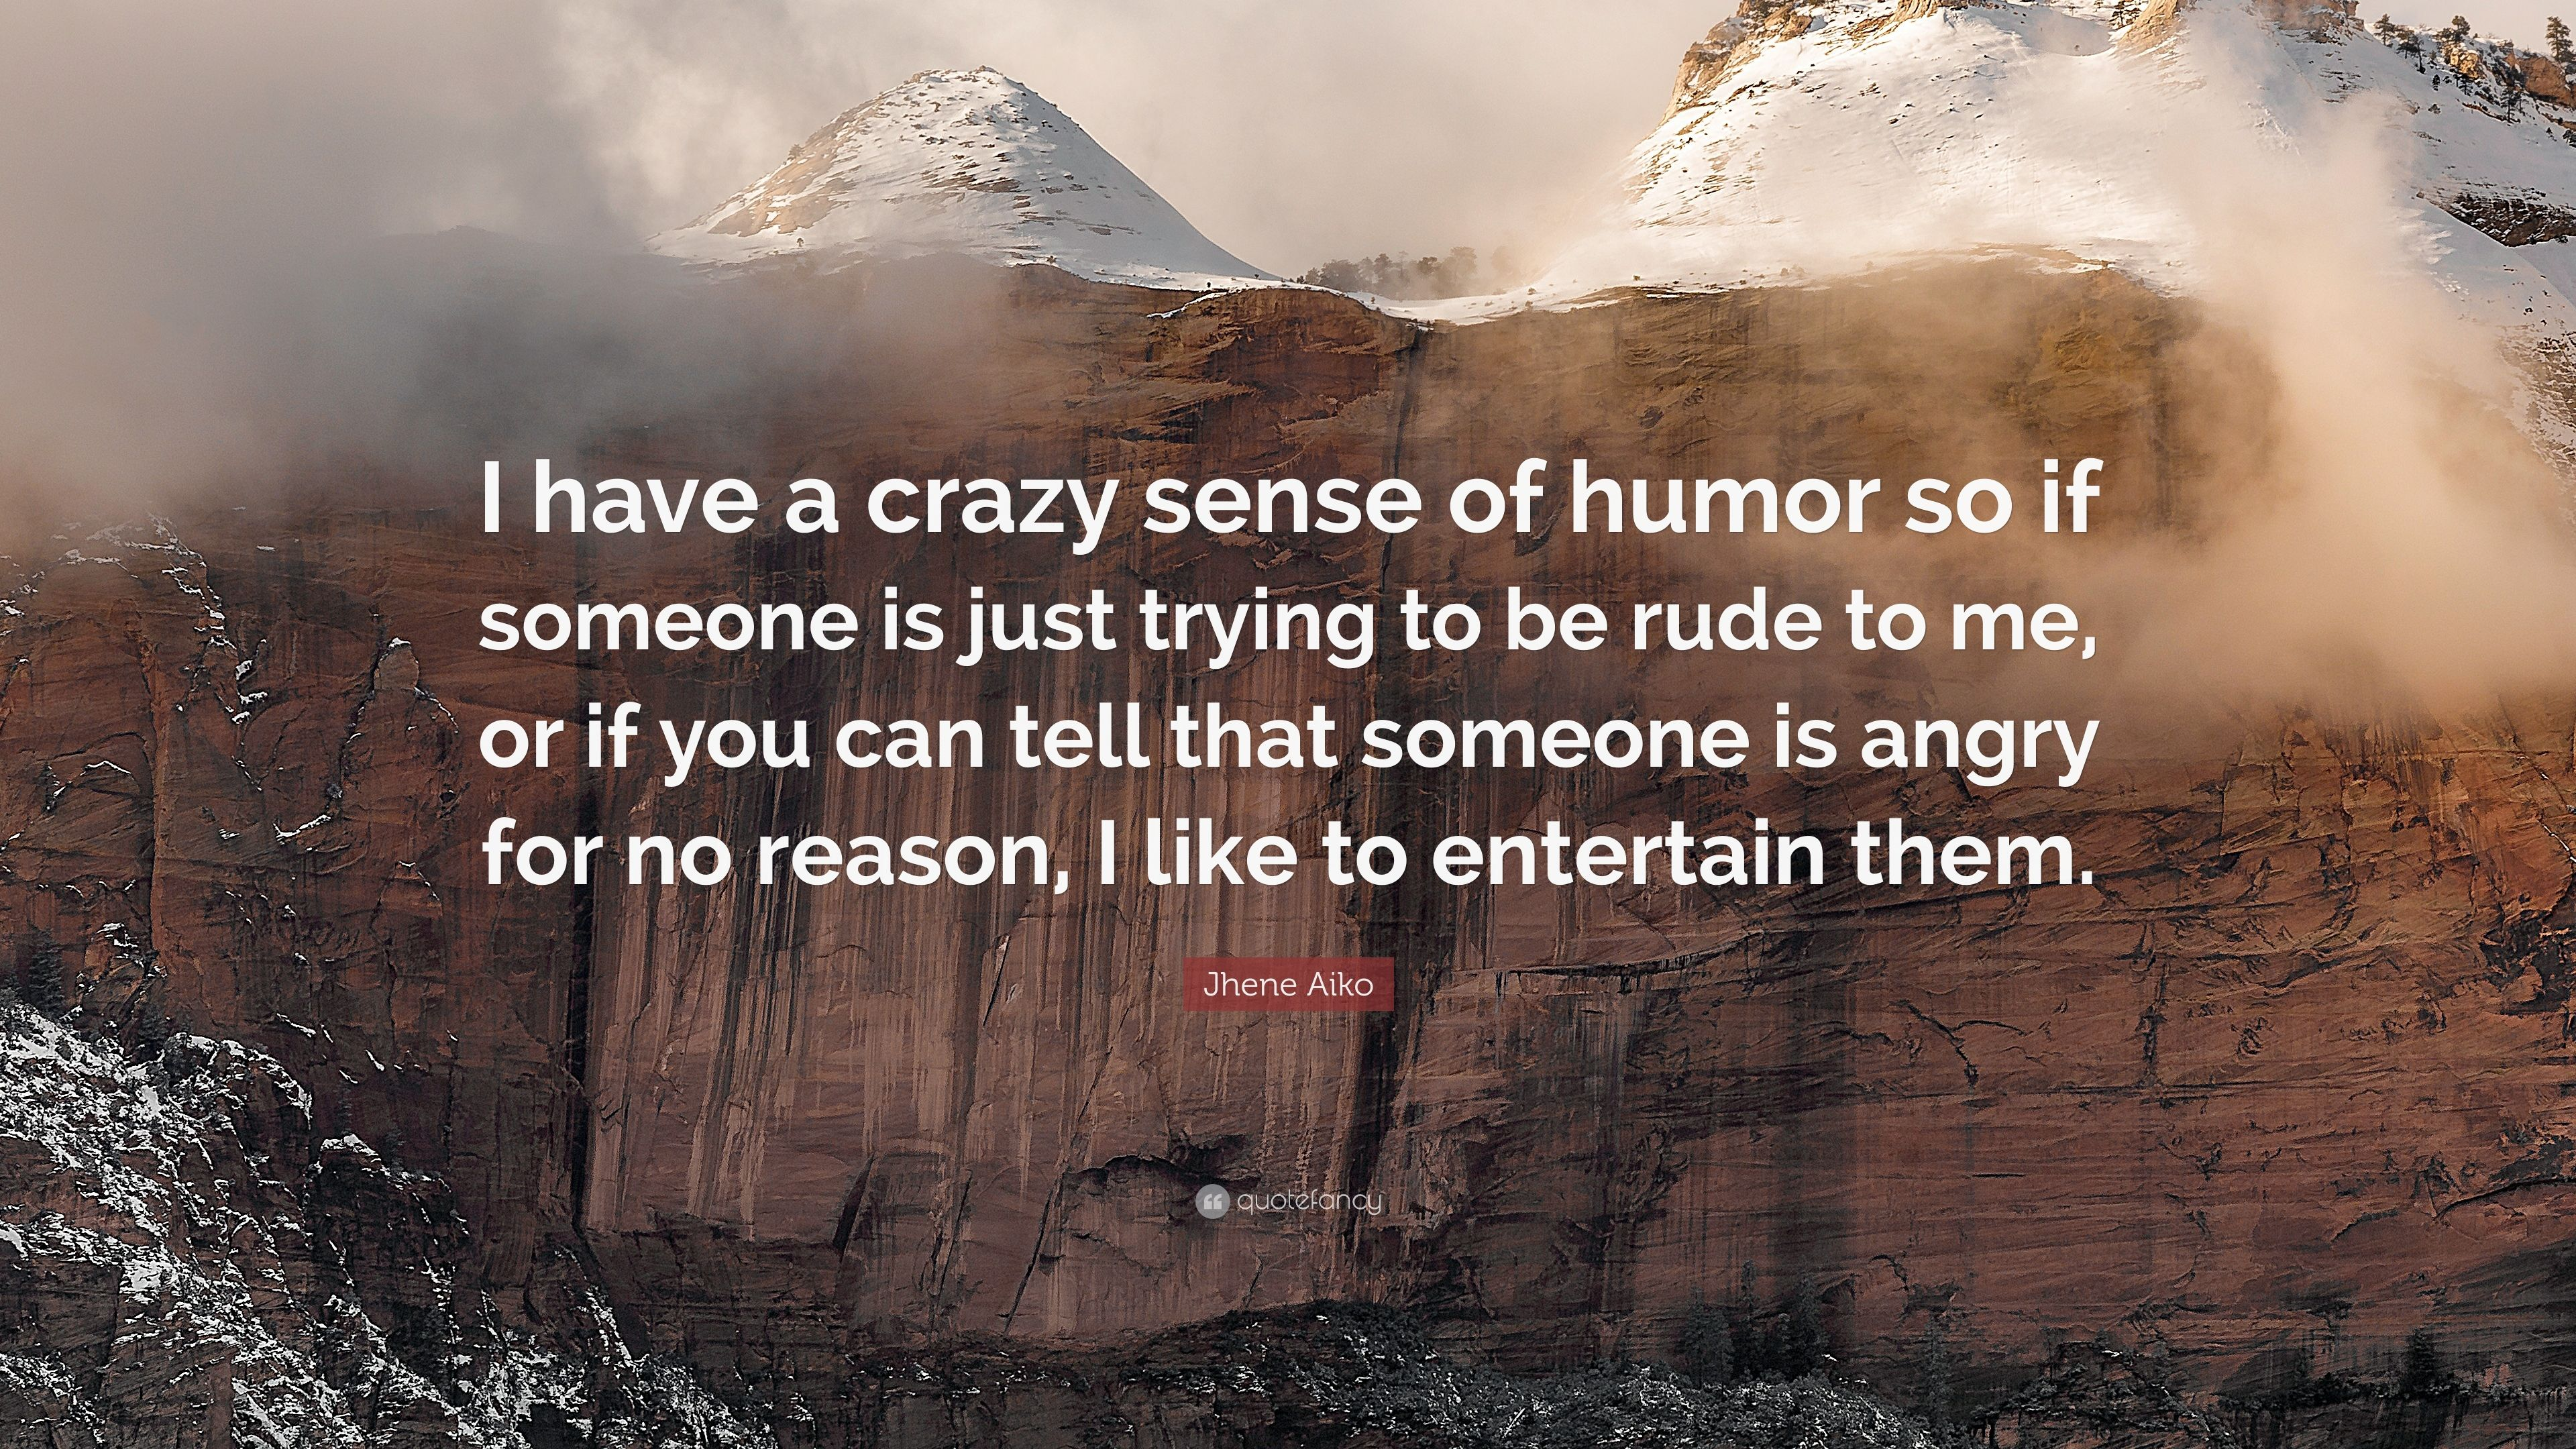 how can you tell if someone is crazy